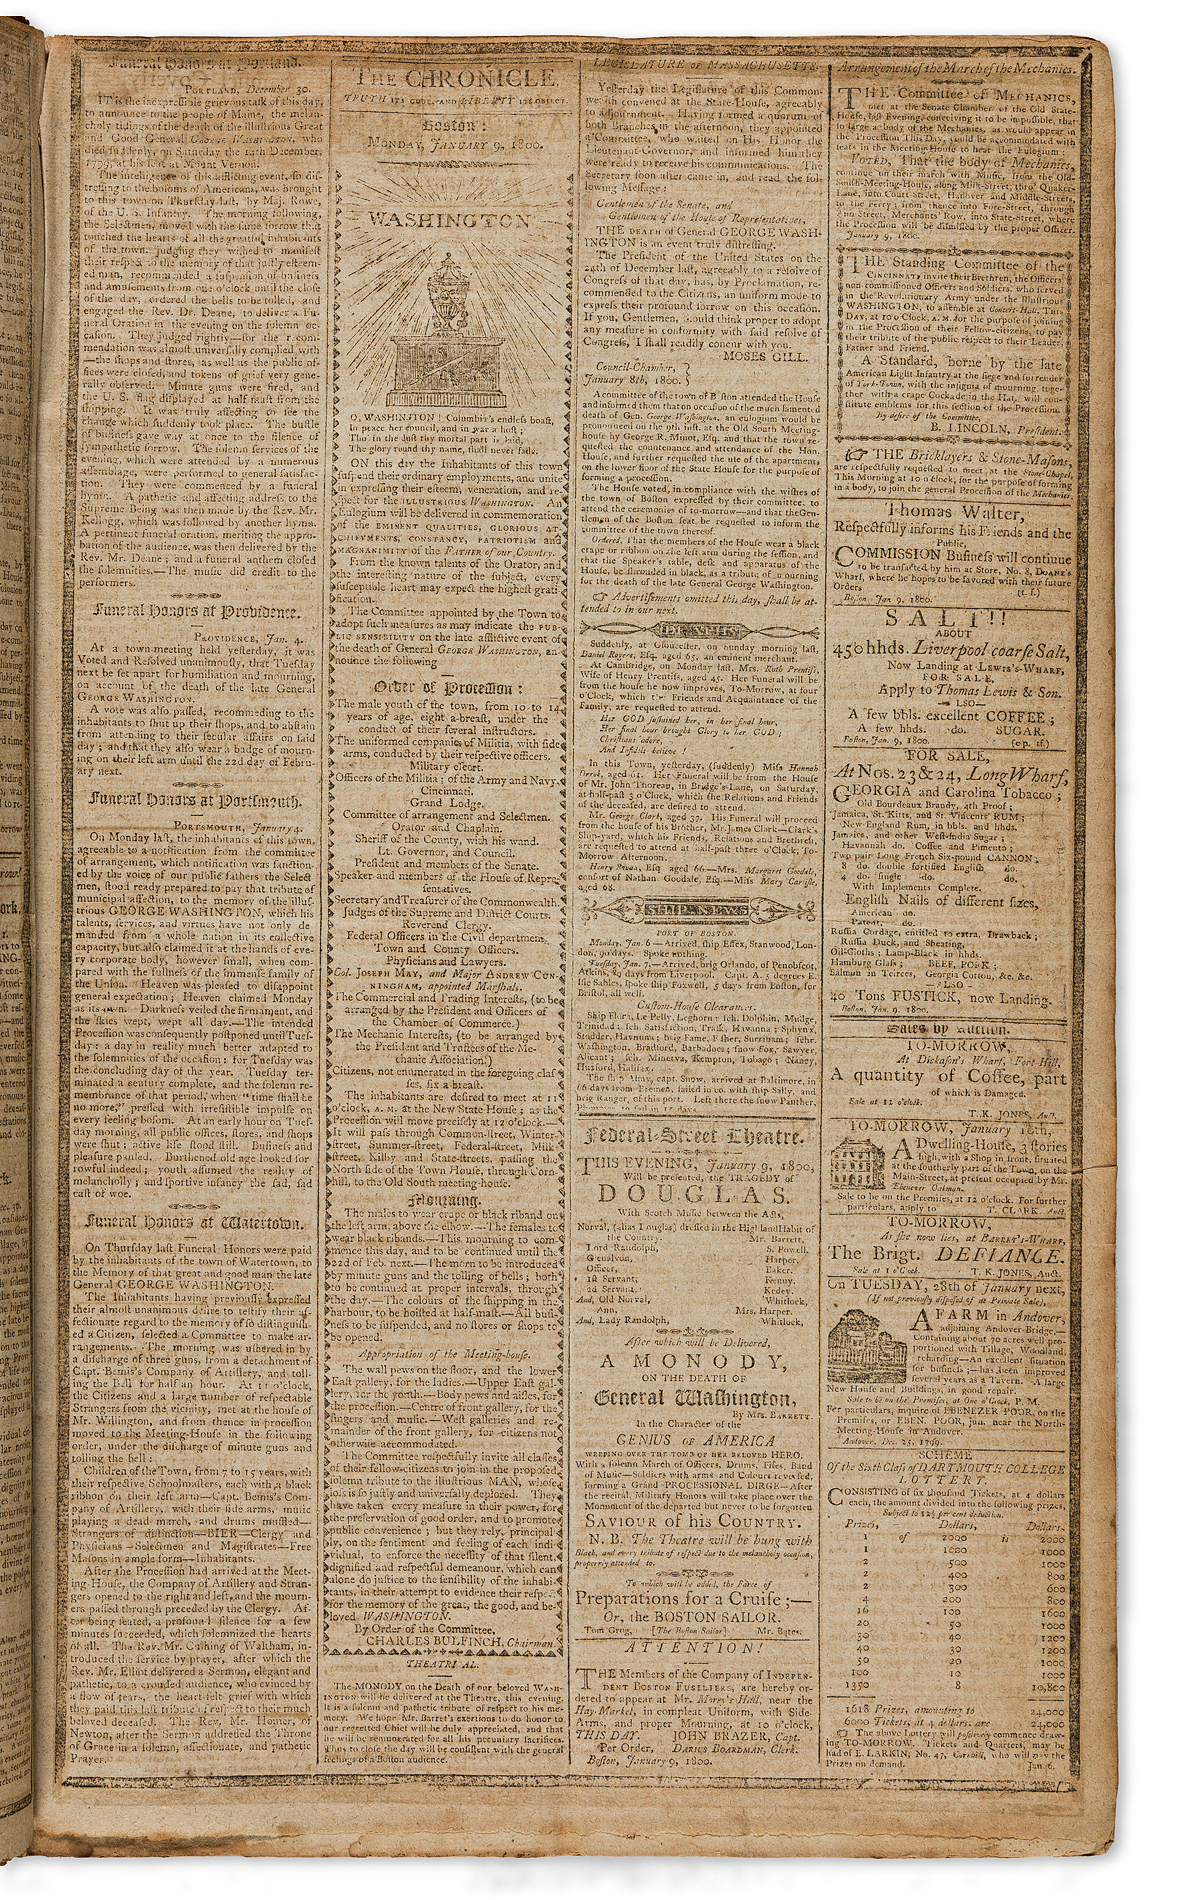 (GEORGE WASHINGTON.) A long continuous run of the Independent Chronicle of Boston, including funeral coverage and more.